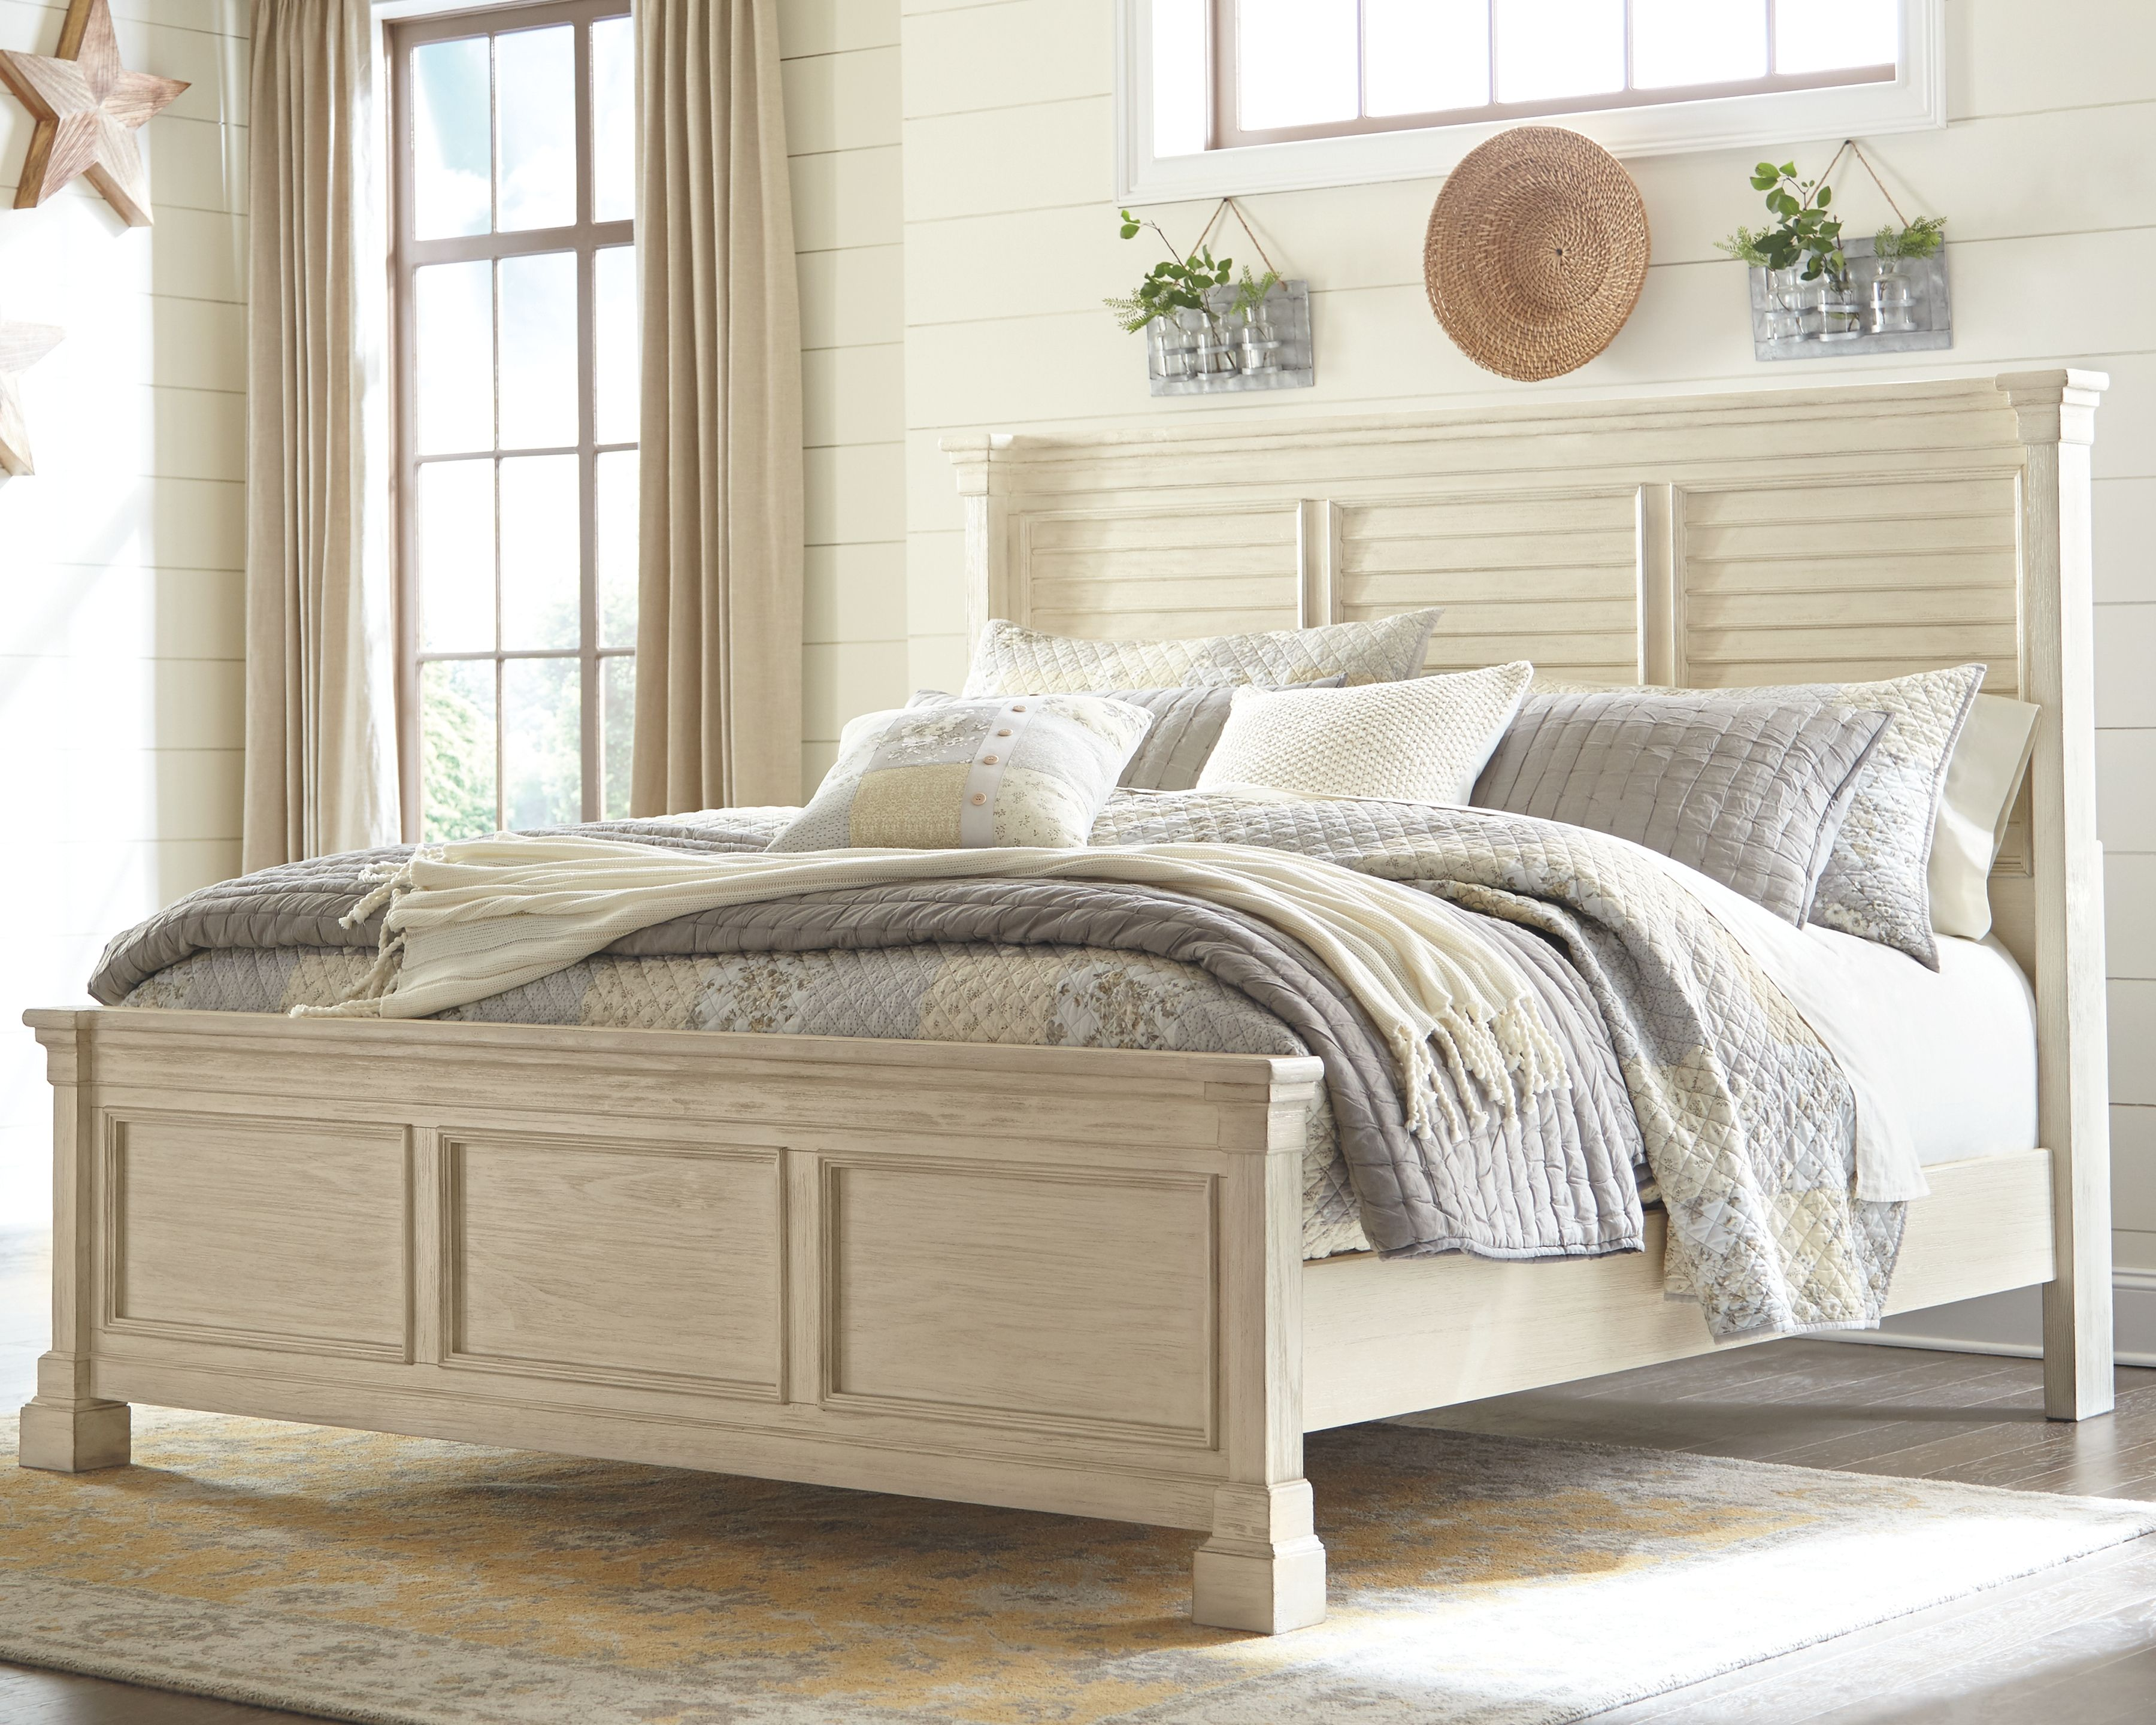 Best Bolanburg King Panel Bed Antique White In 2020 White Paneling Furniture Panel Bed 400 x 300